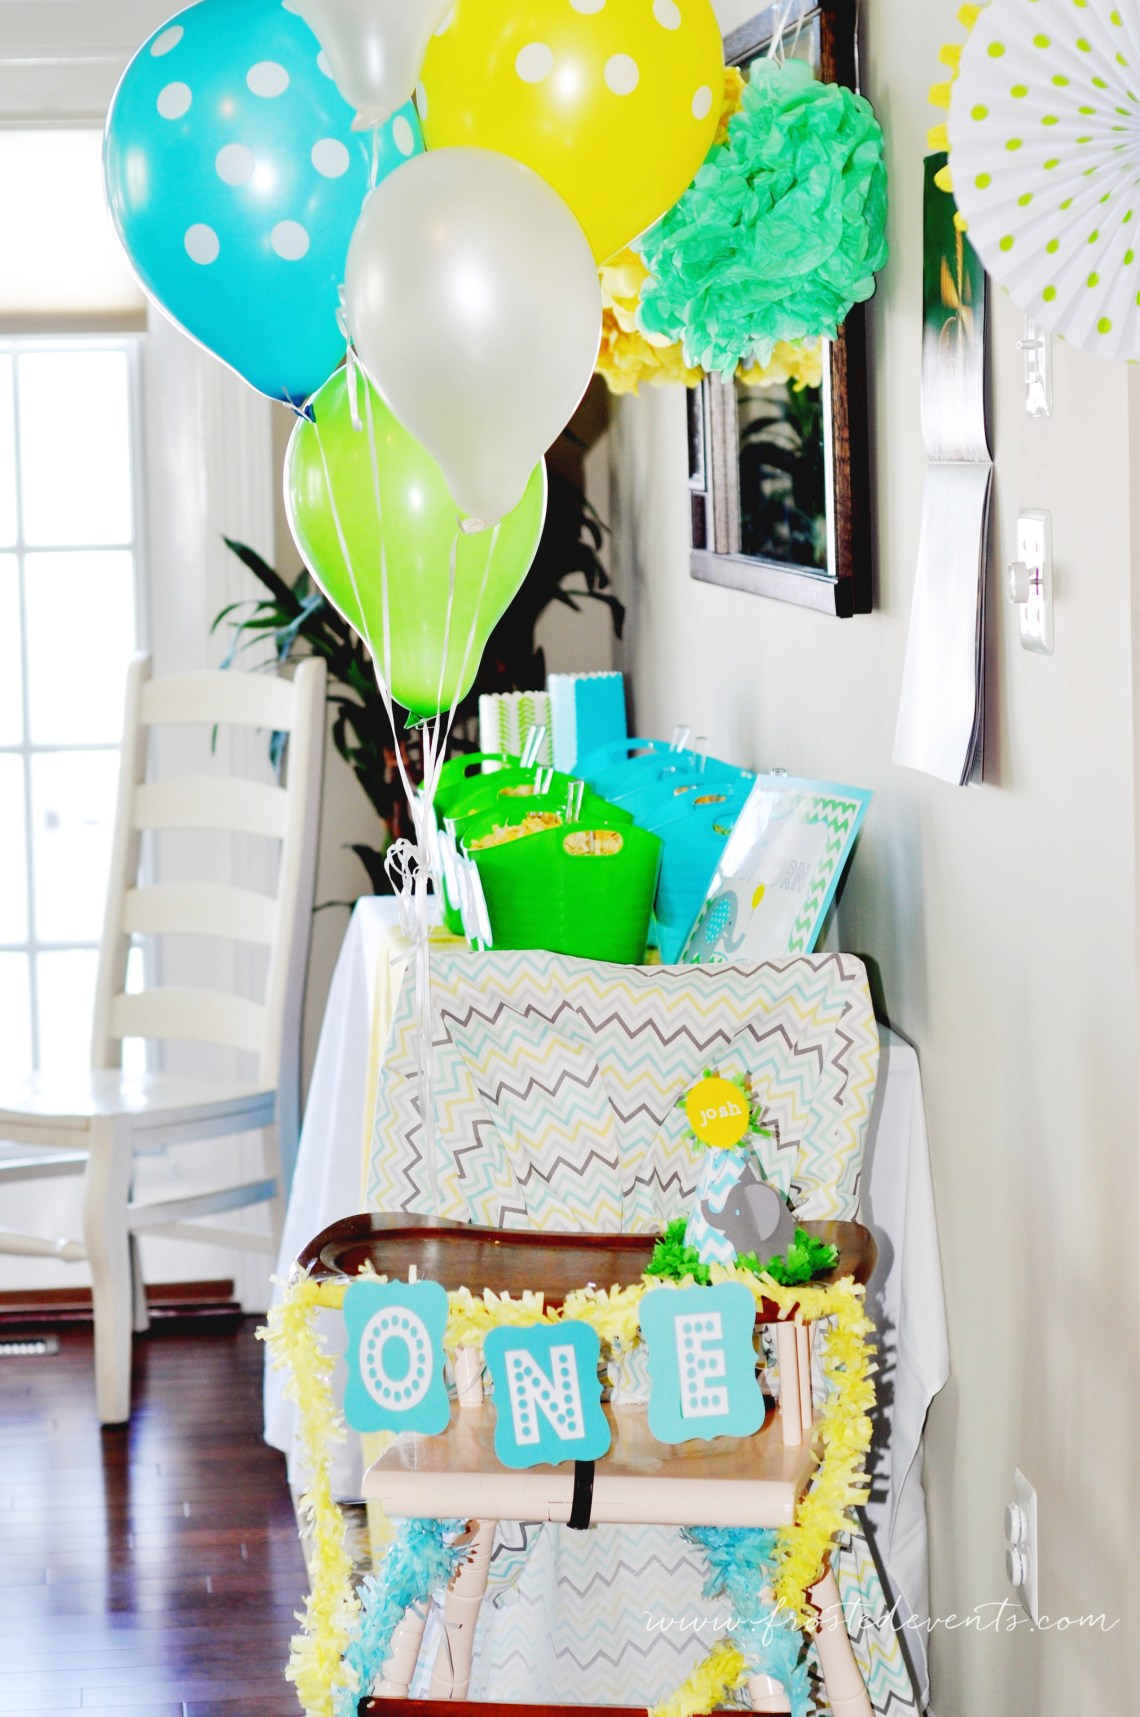 First Birthday Party Ideas - A Bright and Fun First Birthday Party for Little Boy Blue Green Elephant Theme via frostedevents.com @frostedevents